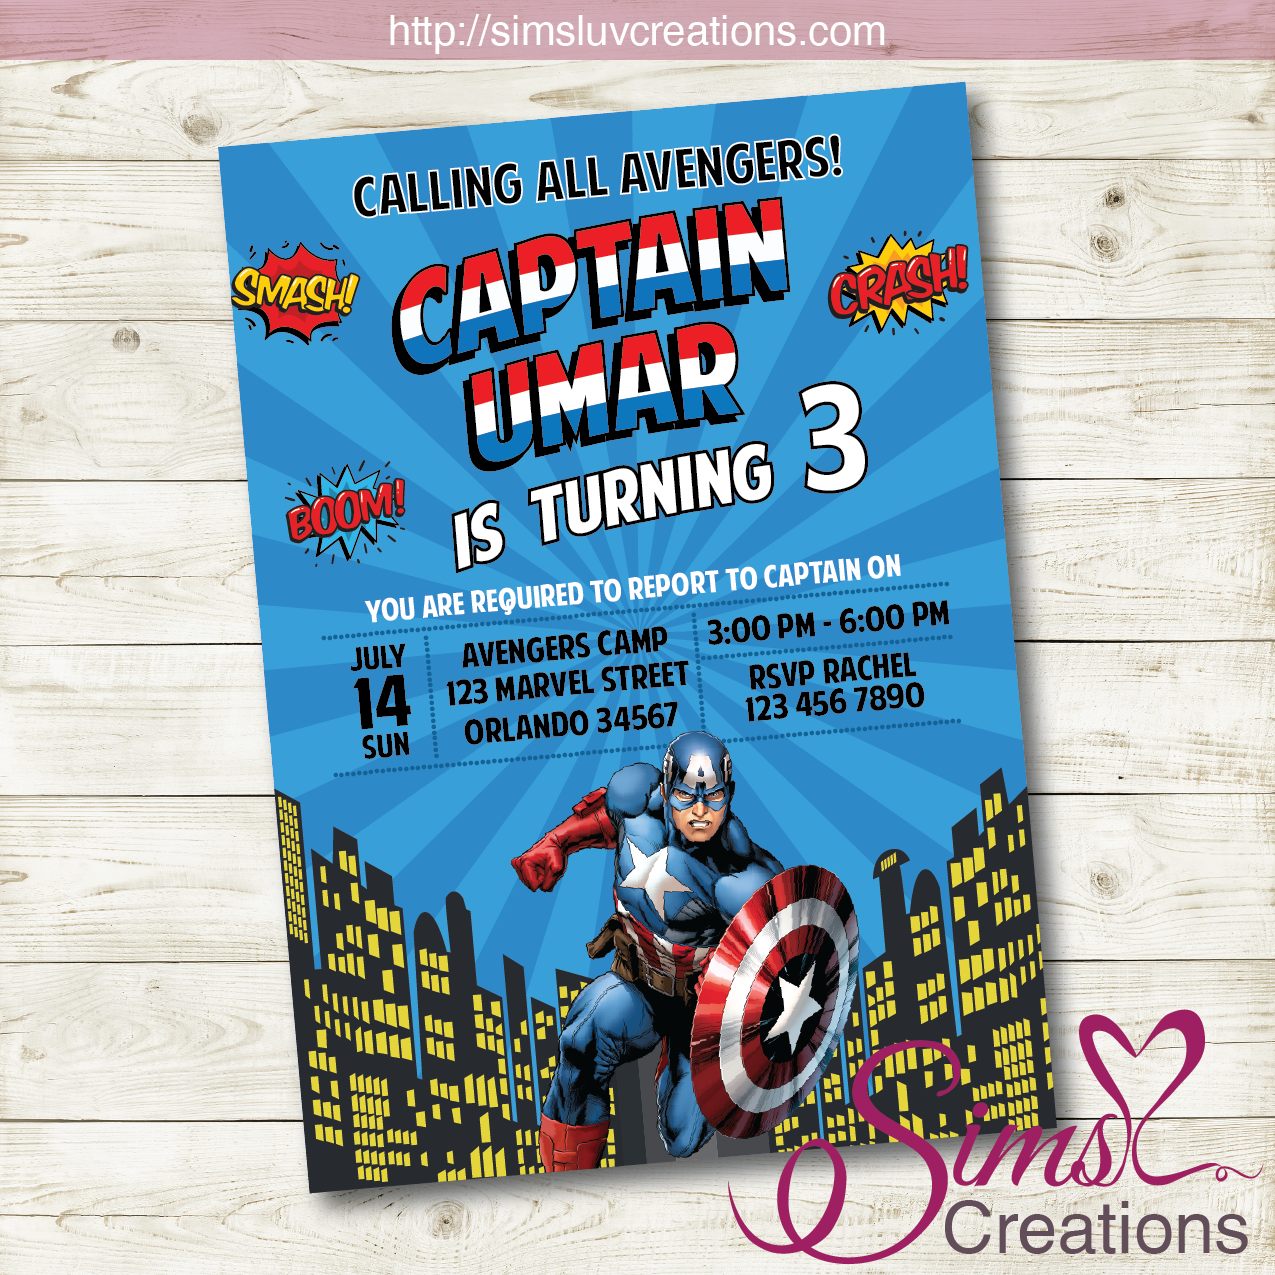 CAPTAIN AMERICA BIRTHDAY PRINTABLE INVITATION | MARVEL AVENGERS SUPERHERO PARTY INVITATION | CUSTOM PHOTO